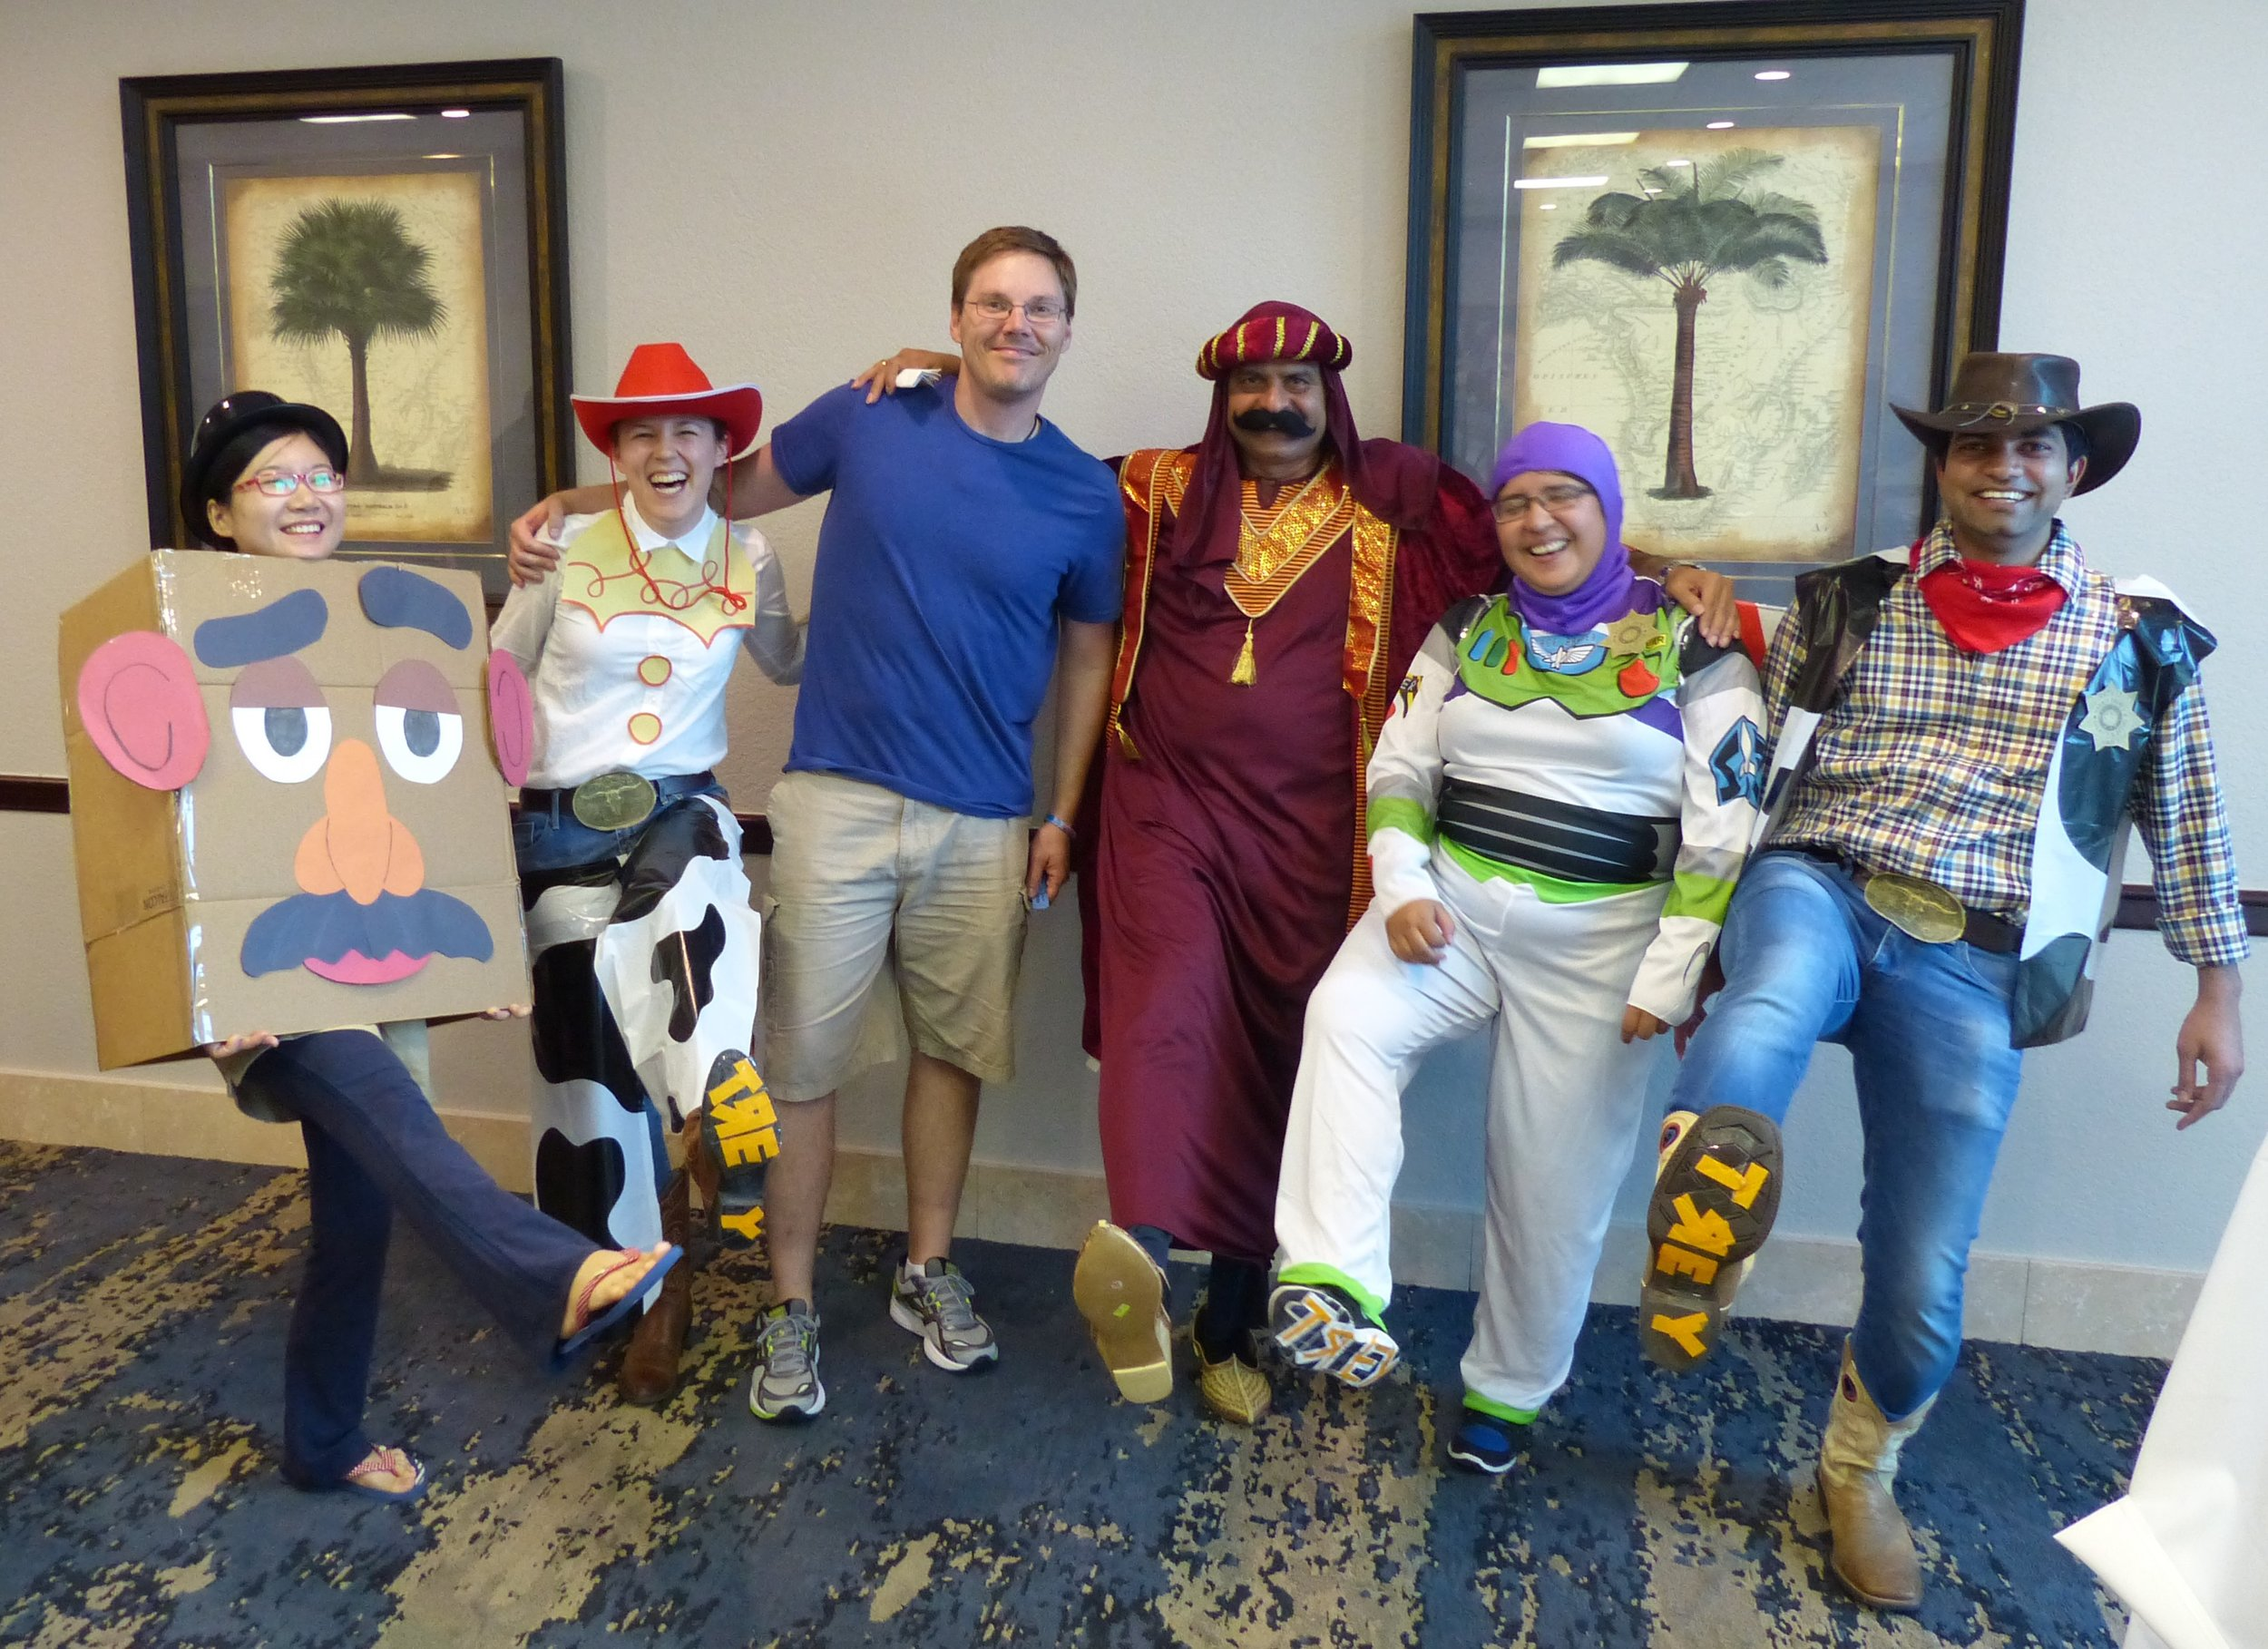 Westbrook lab members dressed up as Toy Story at the 2016 Biochemistry Retreat costume party.